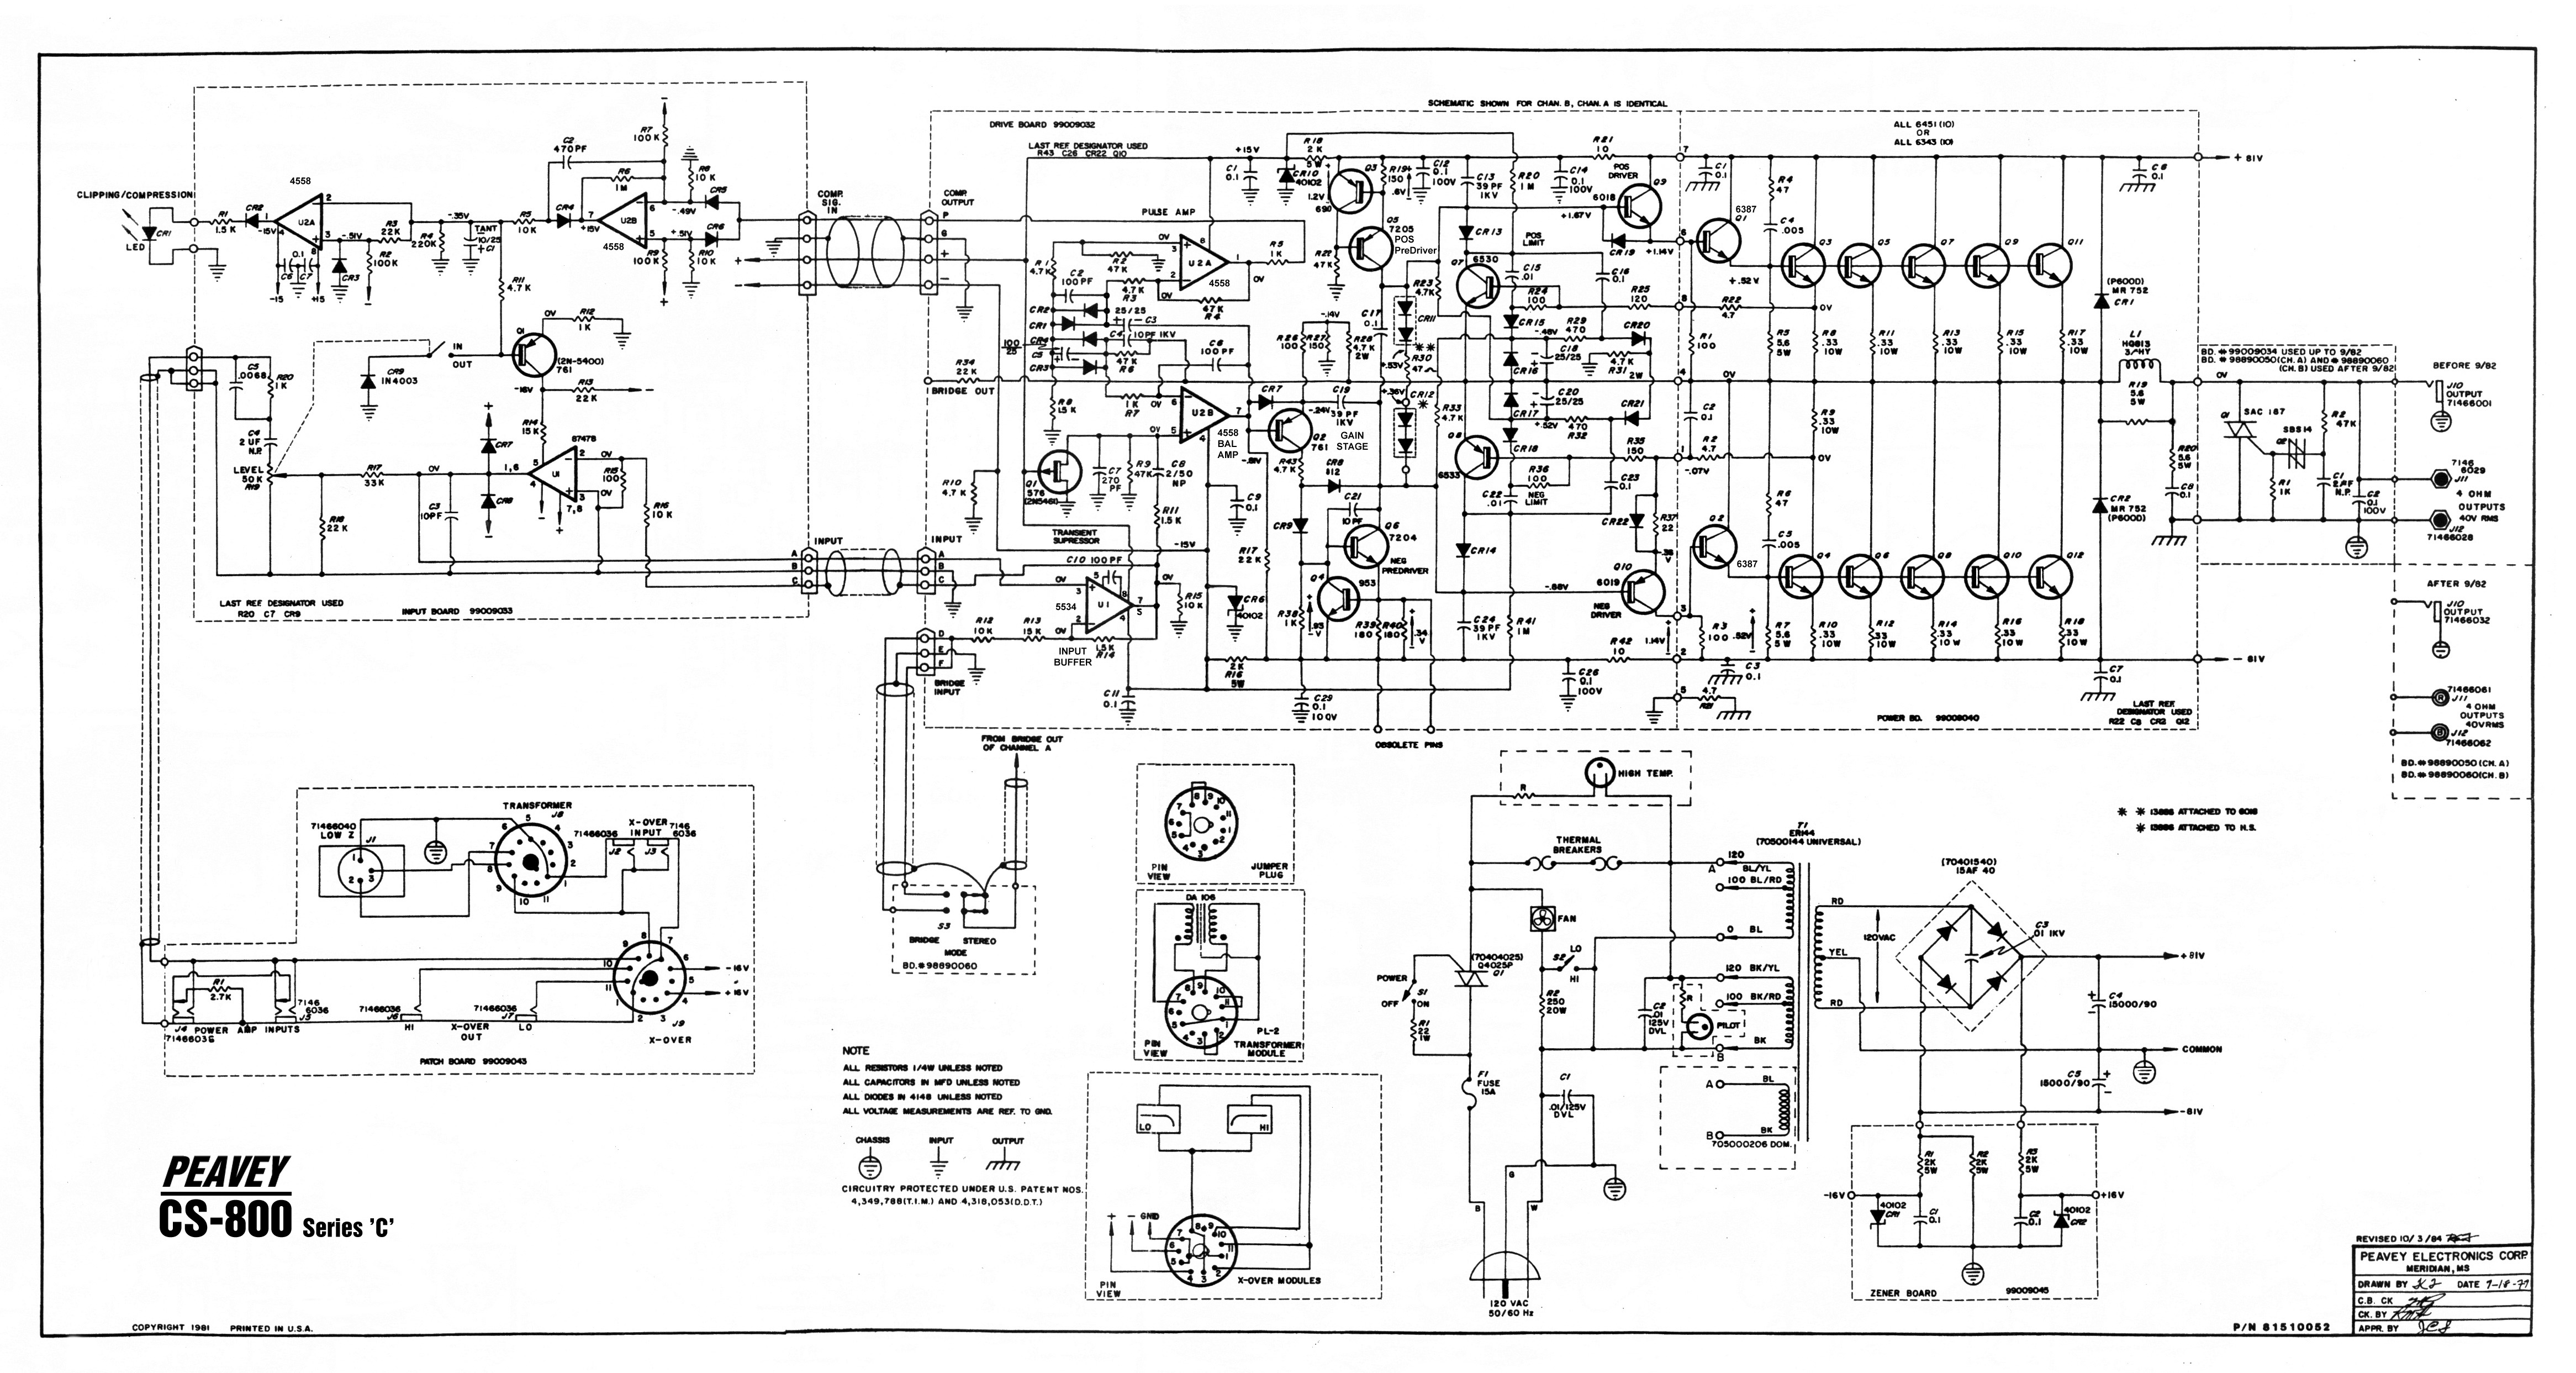 Peavey Wiring Diagrams Unlimited Access To Diagram Fender Guitar Amp Schematic Free Download Trusted Rh 39 Nl Schoenheitsbrieftaube De